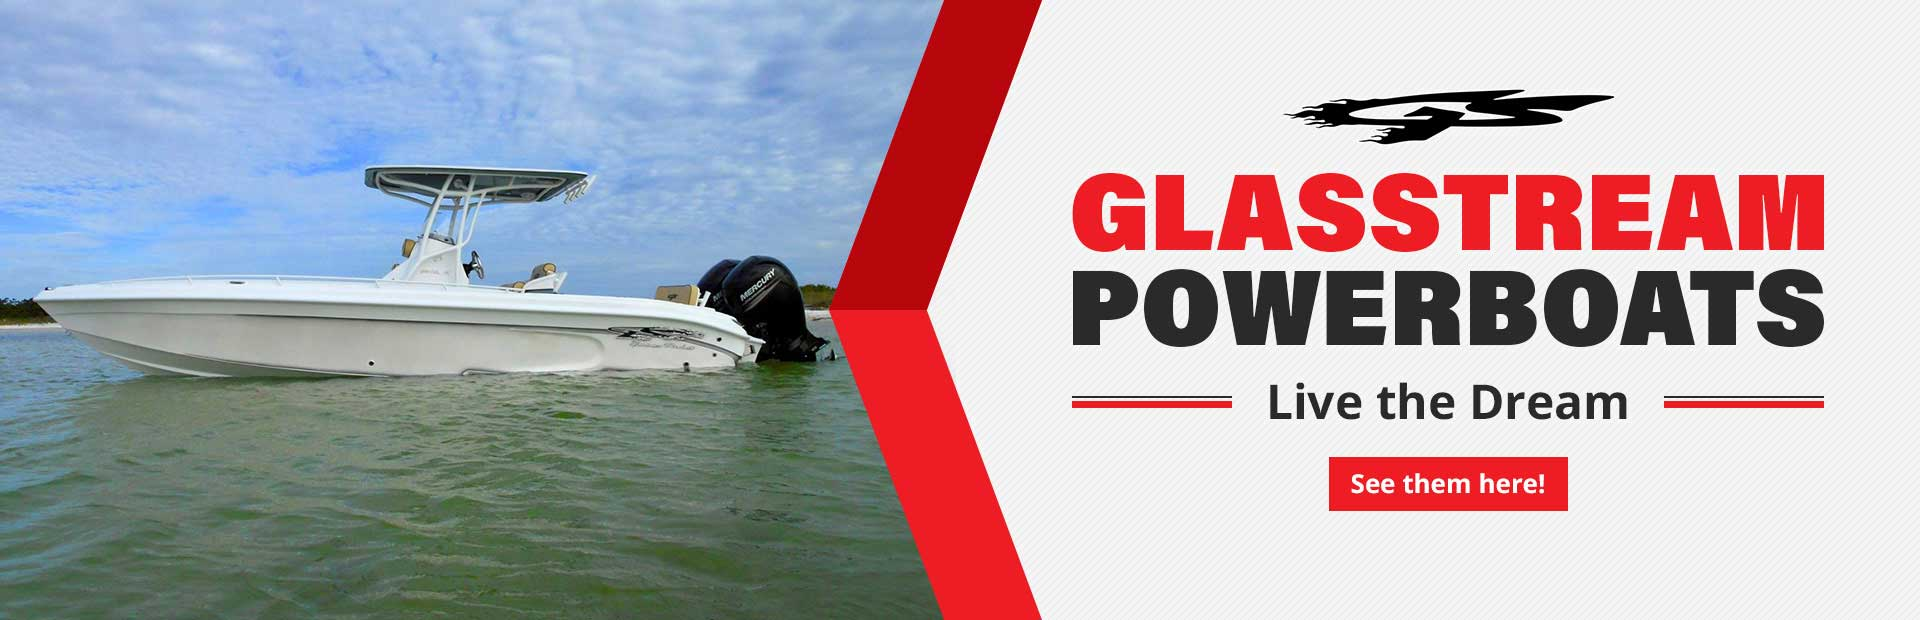 Glasstream Powerboats: Live the Dream